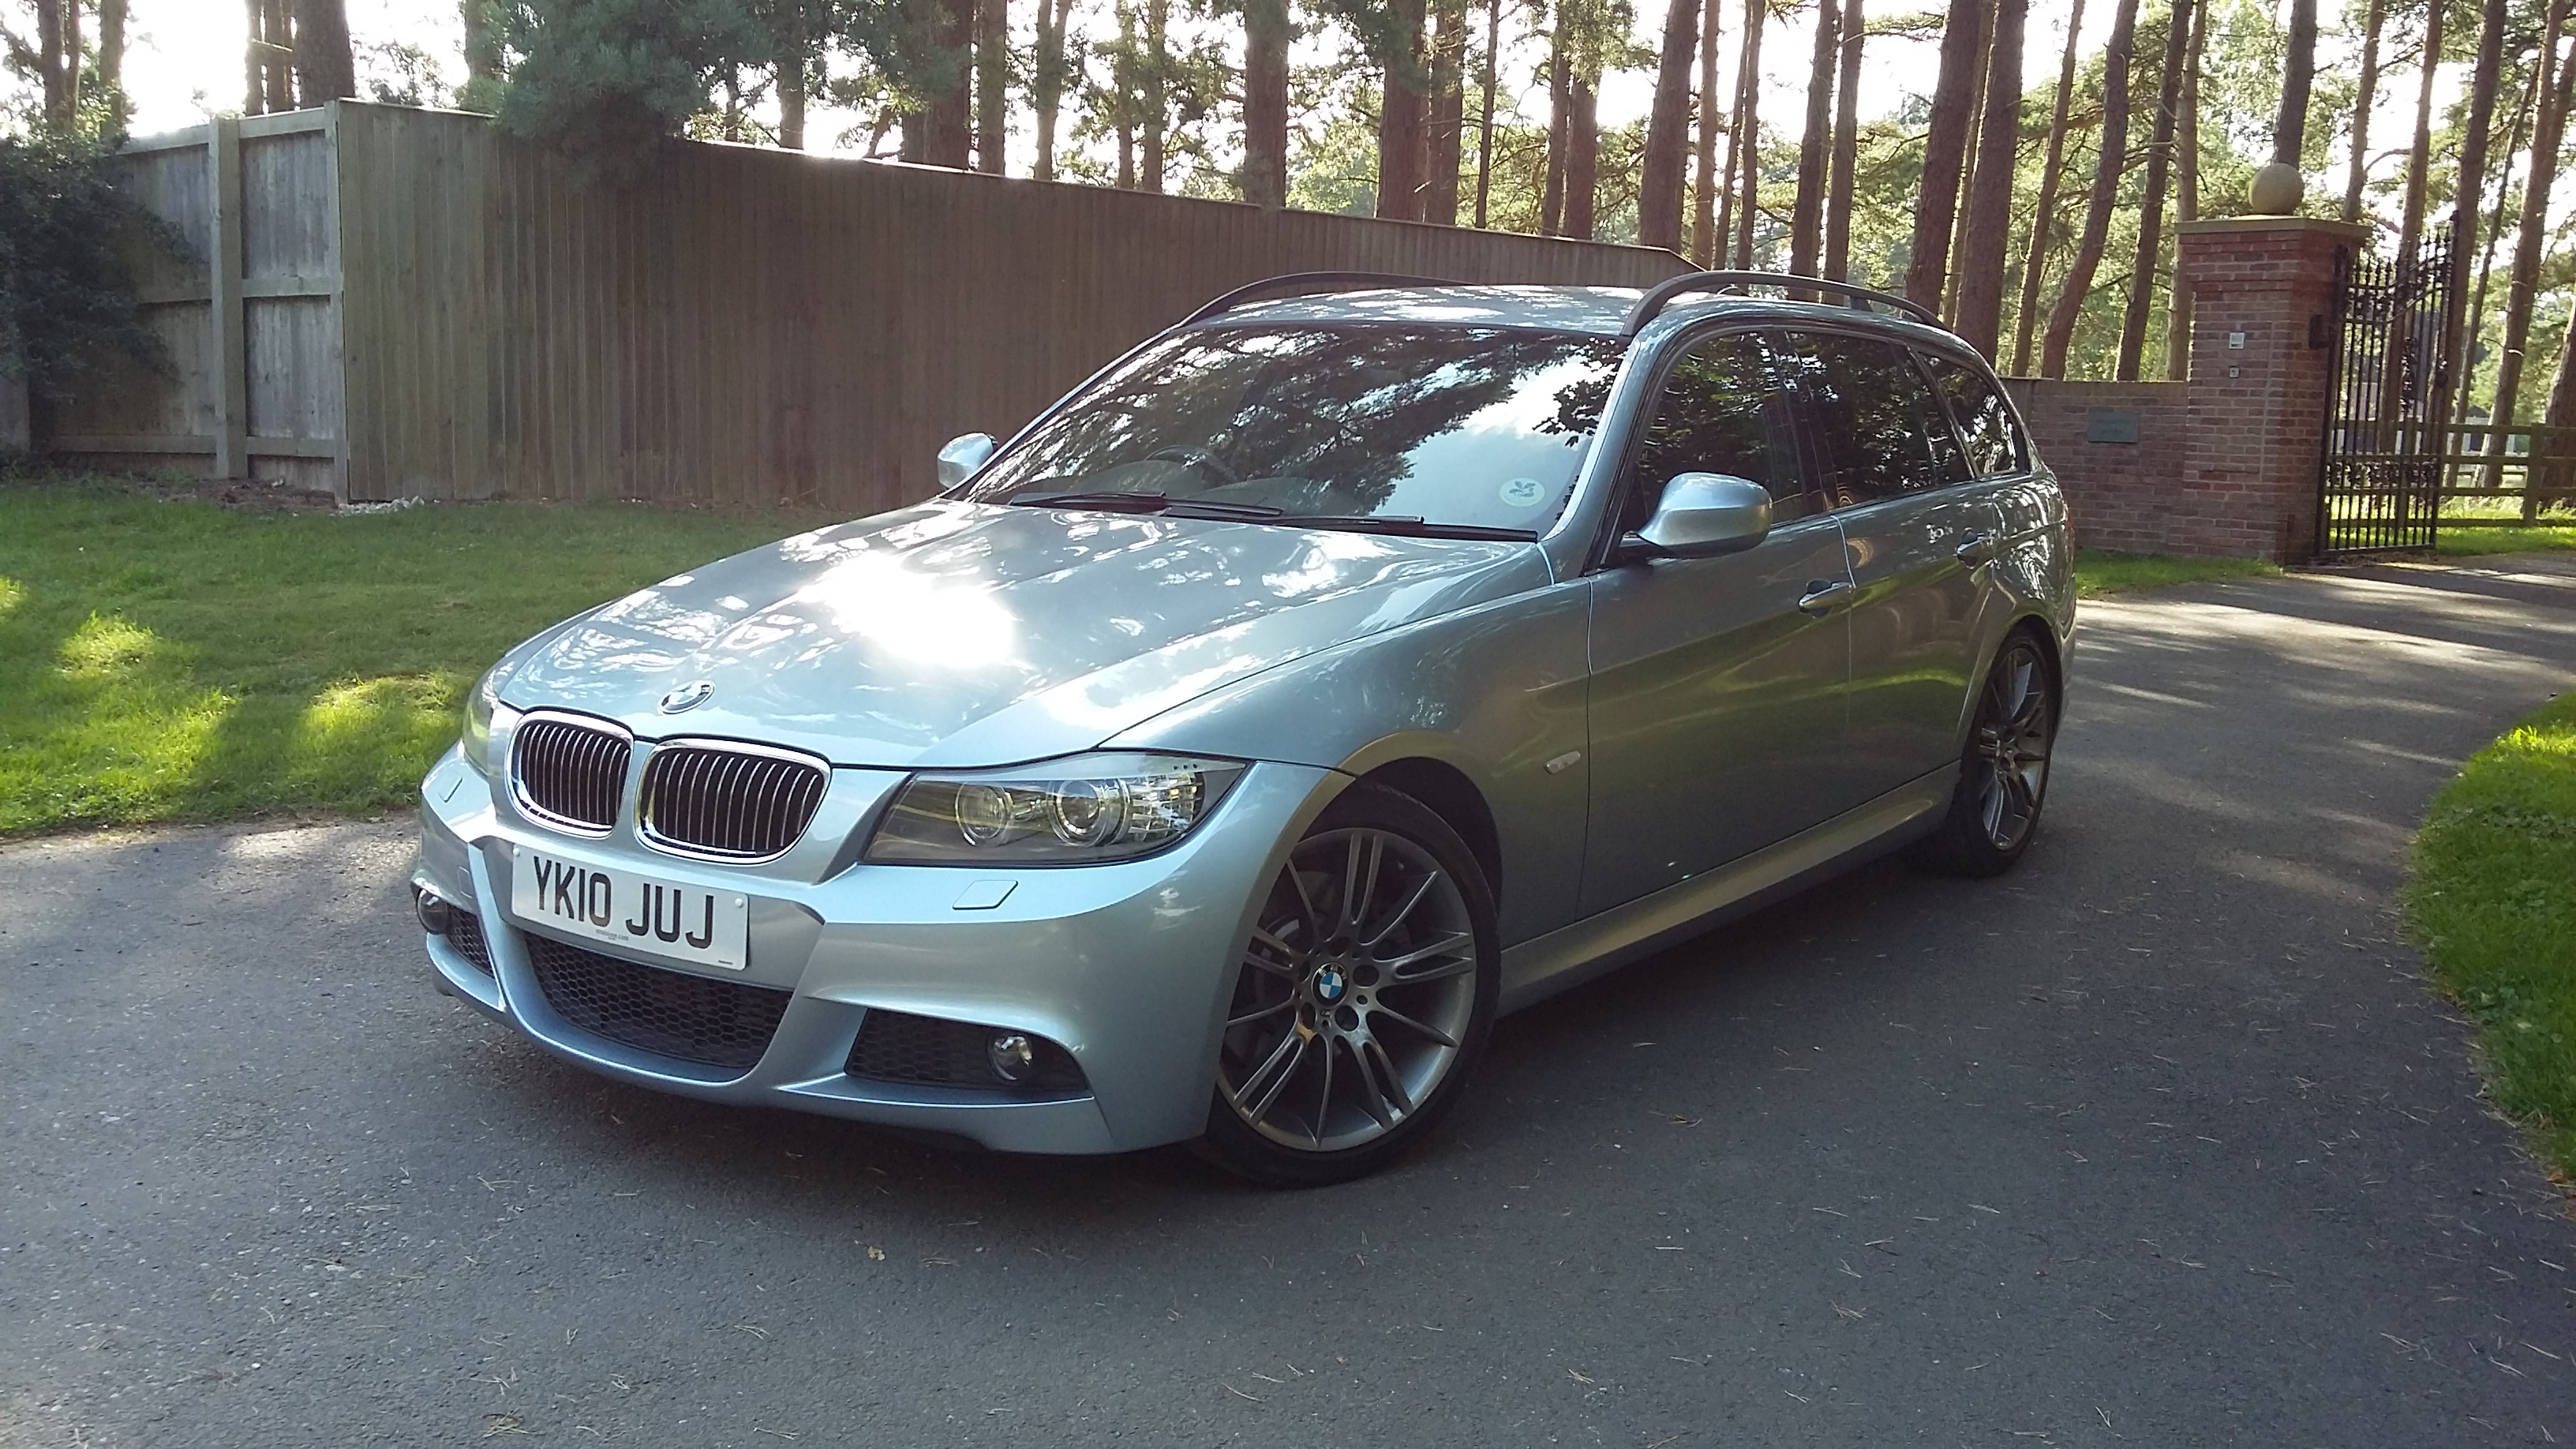 BMW D M Sport Touring For Sale By Woodlands Cars - 330d bmw